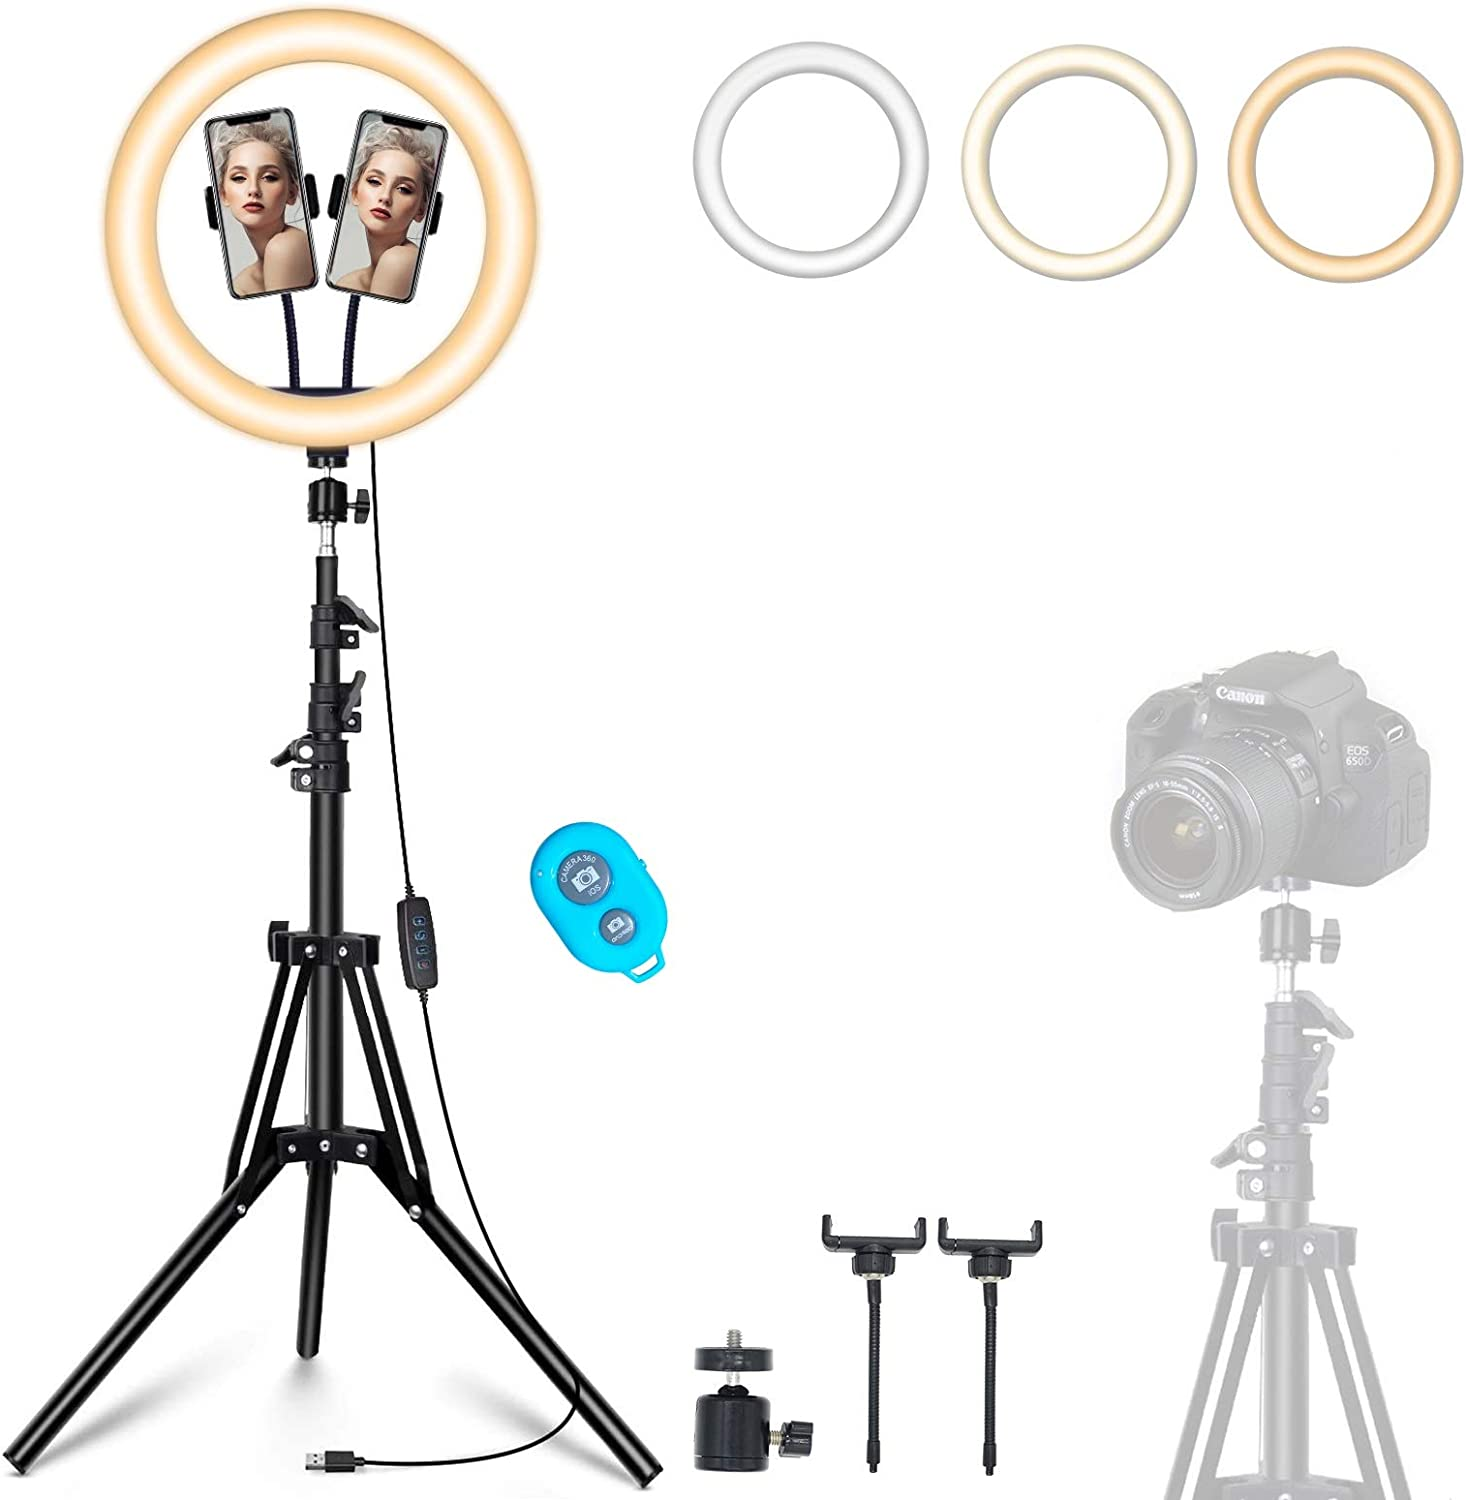 "12"" Ring Light with Tripod Stand & 2 Phone Holder, Dimmable USB Beauty Ring Lights with Bluetooth Remote, LED Selfie Ring Light for Photography/Makeup/Live Stream,Compatible with iPhone and Android"